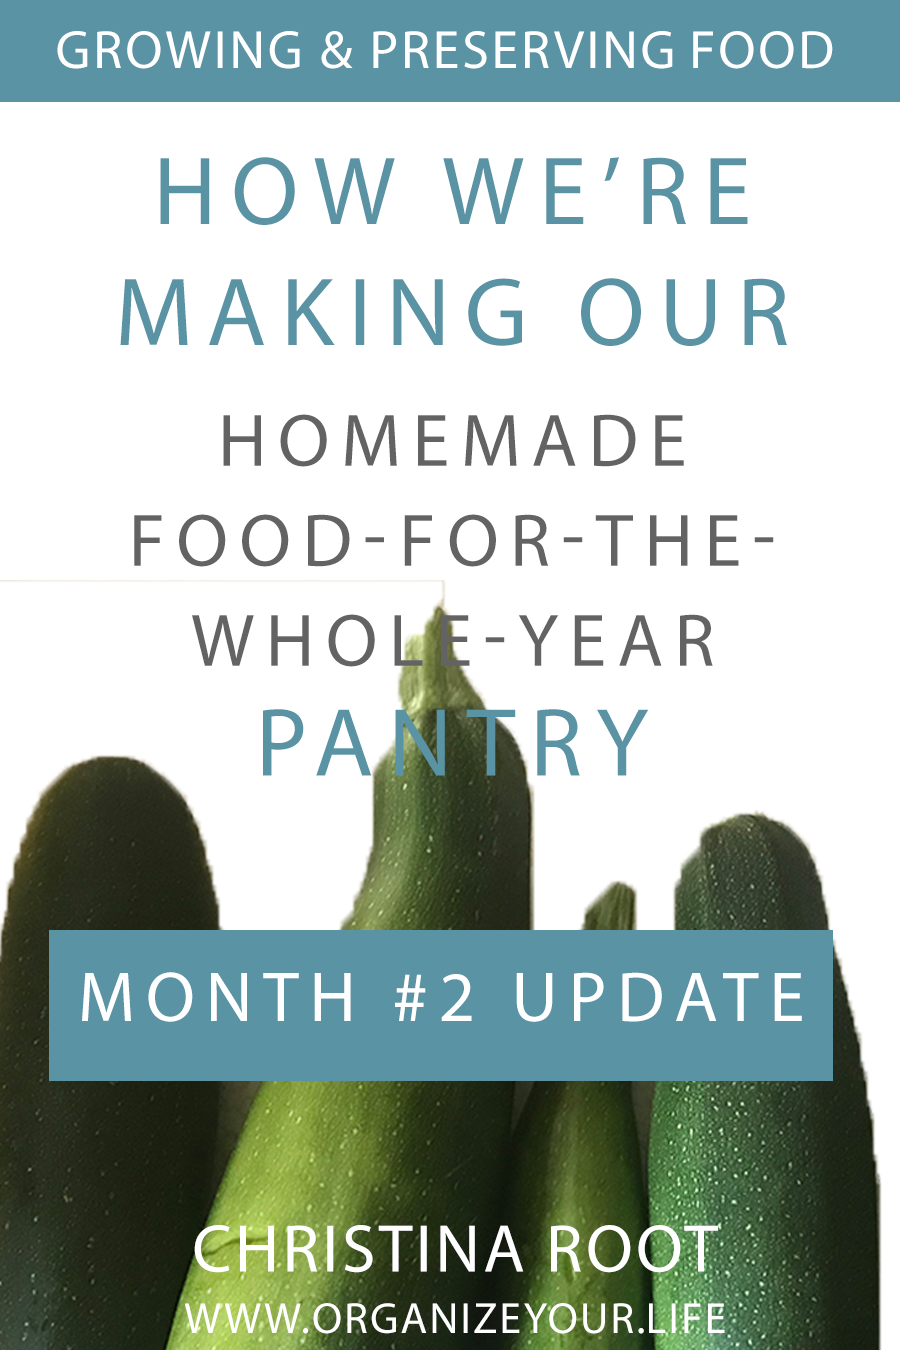 Second Month Update: Creating Our Homemade Pantry